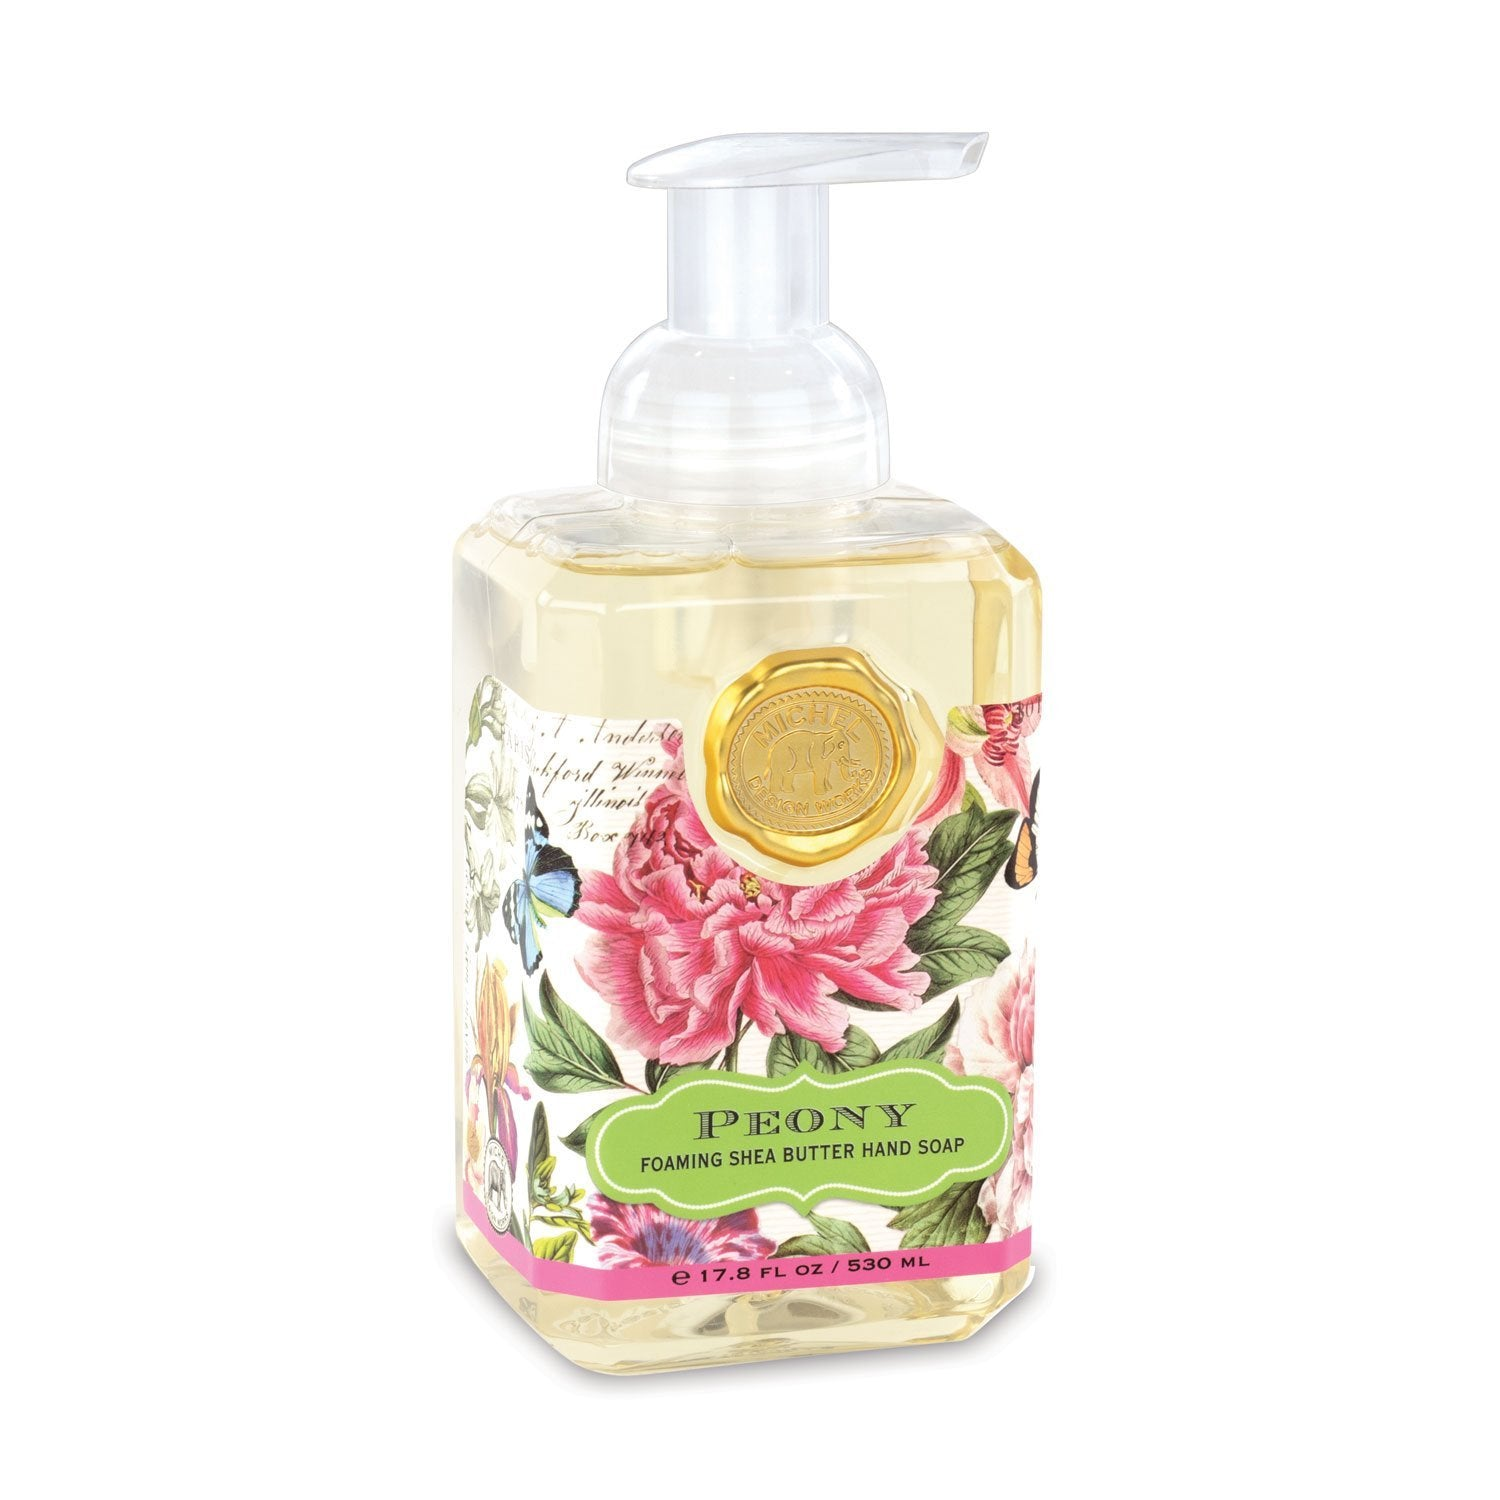 Michel Design Works Foamer Soap Peony